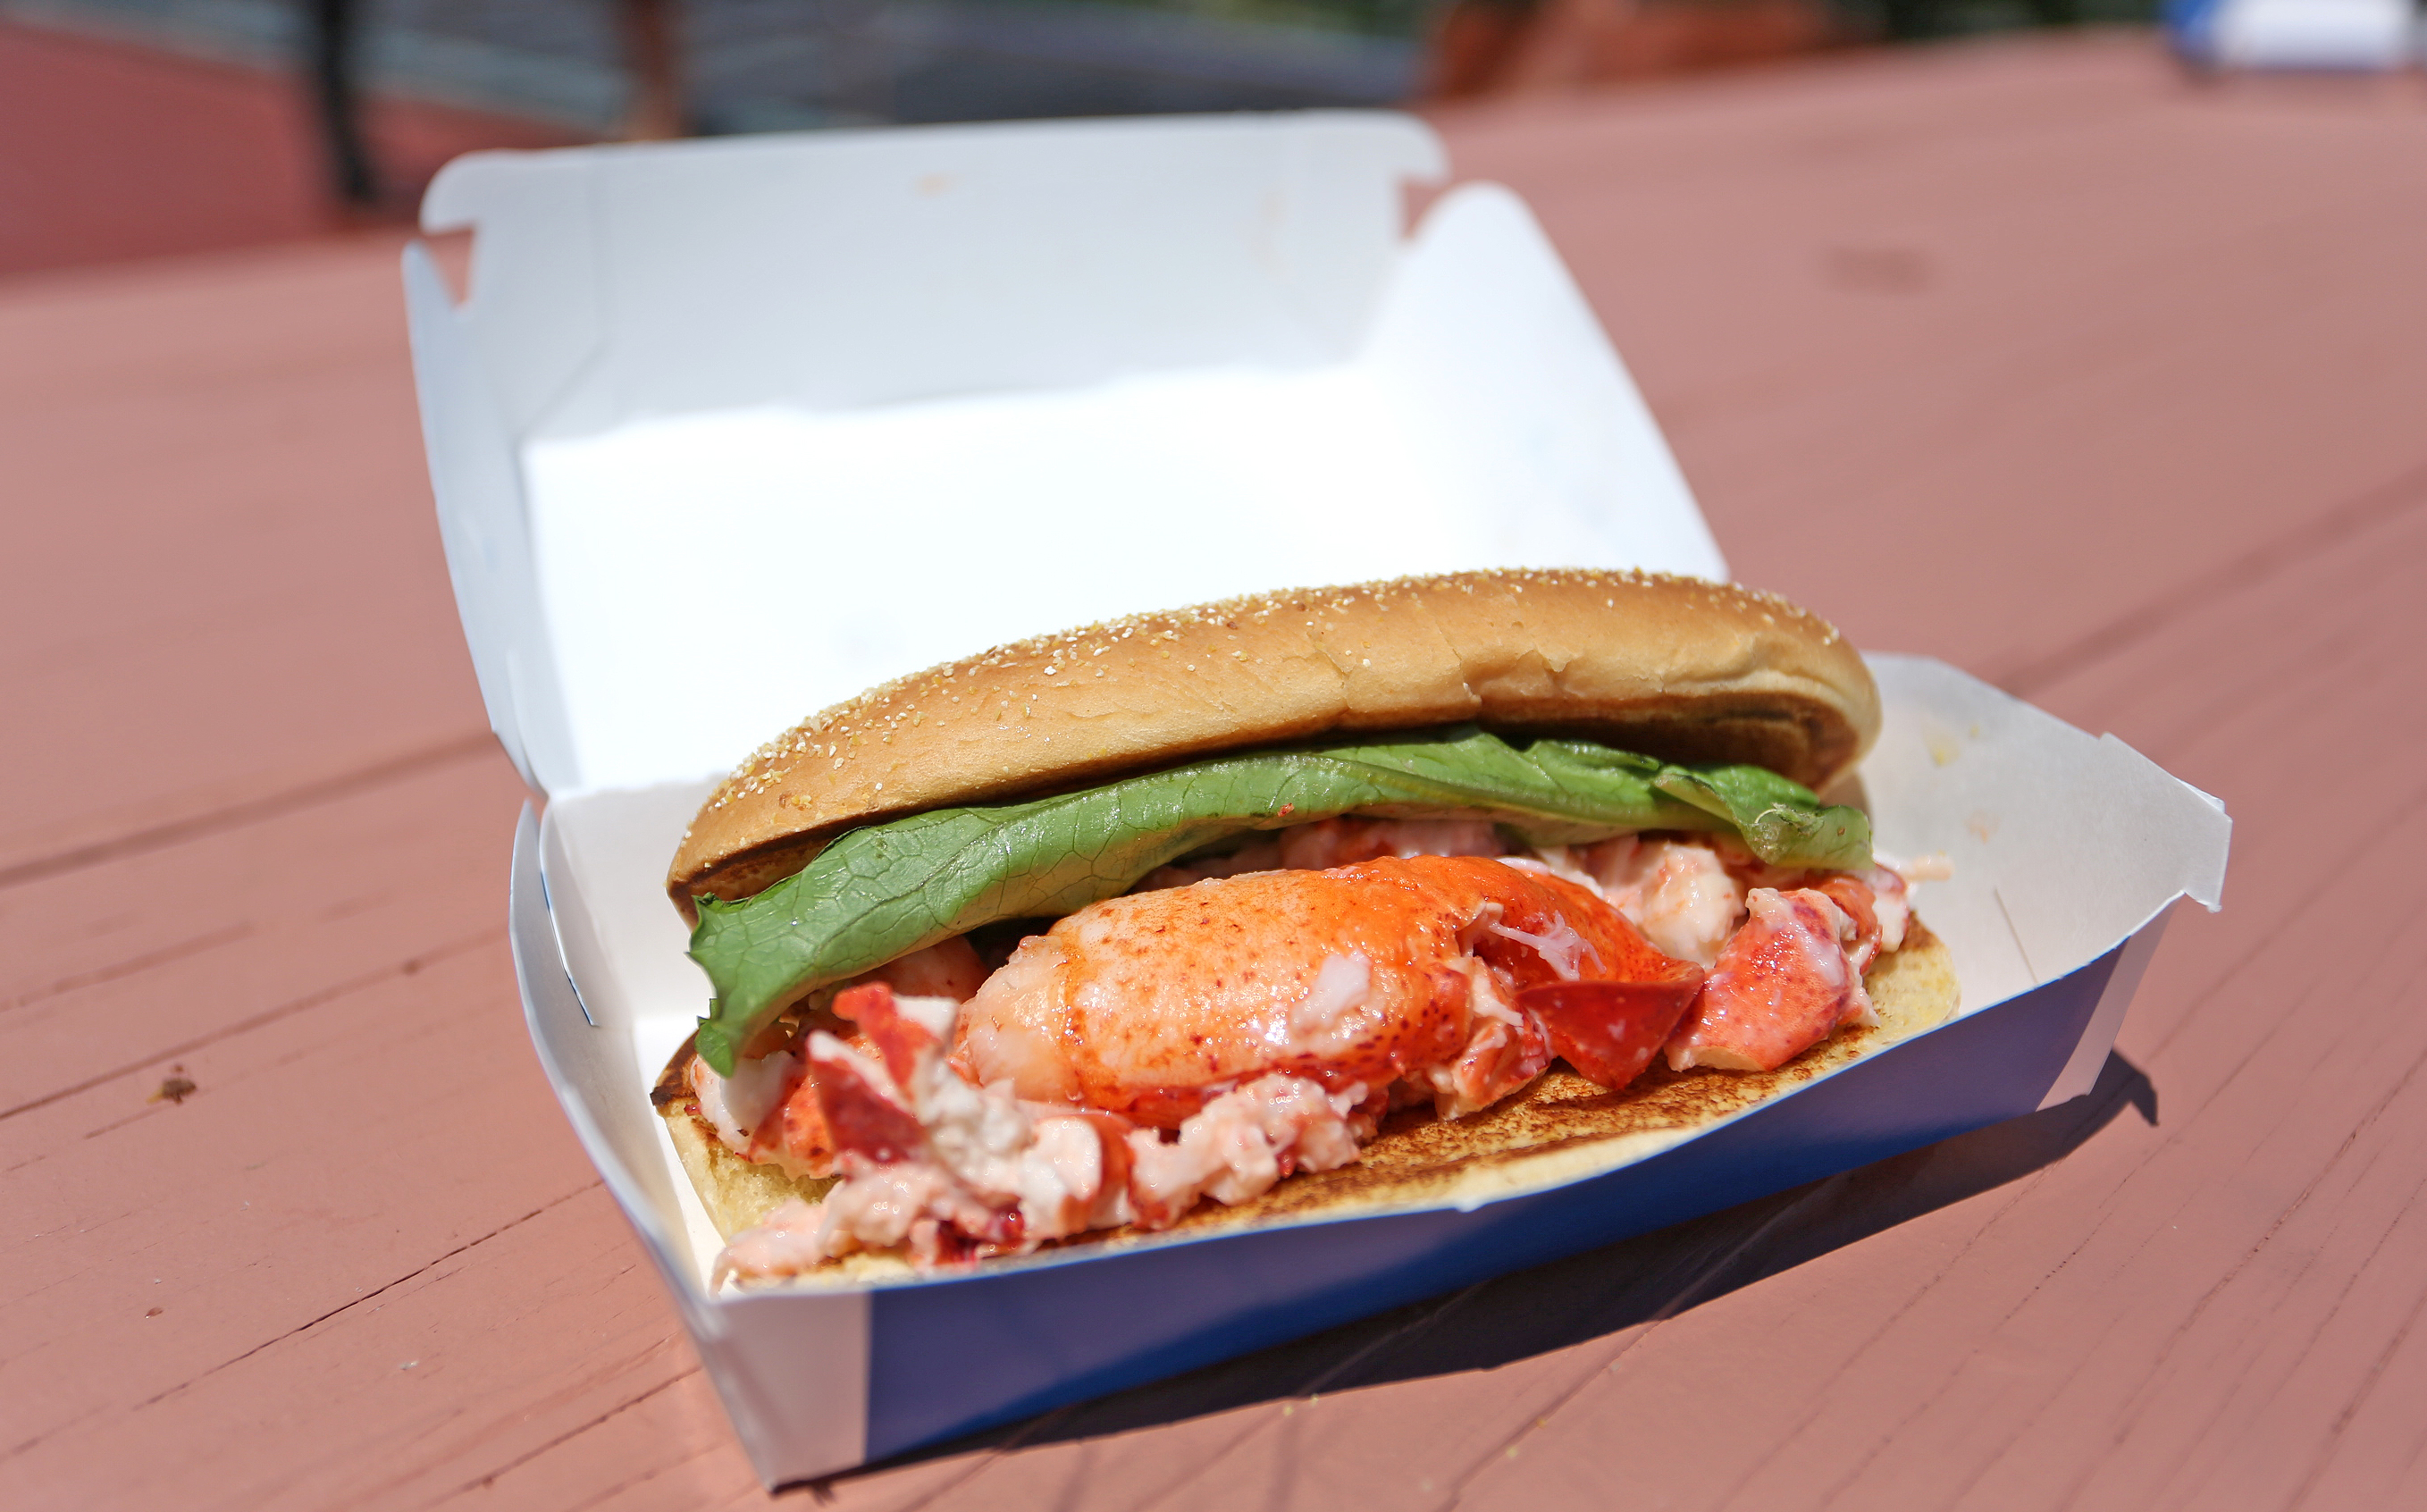 McDonald's now sells lobster rolls in New England